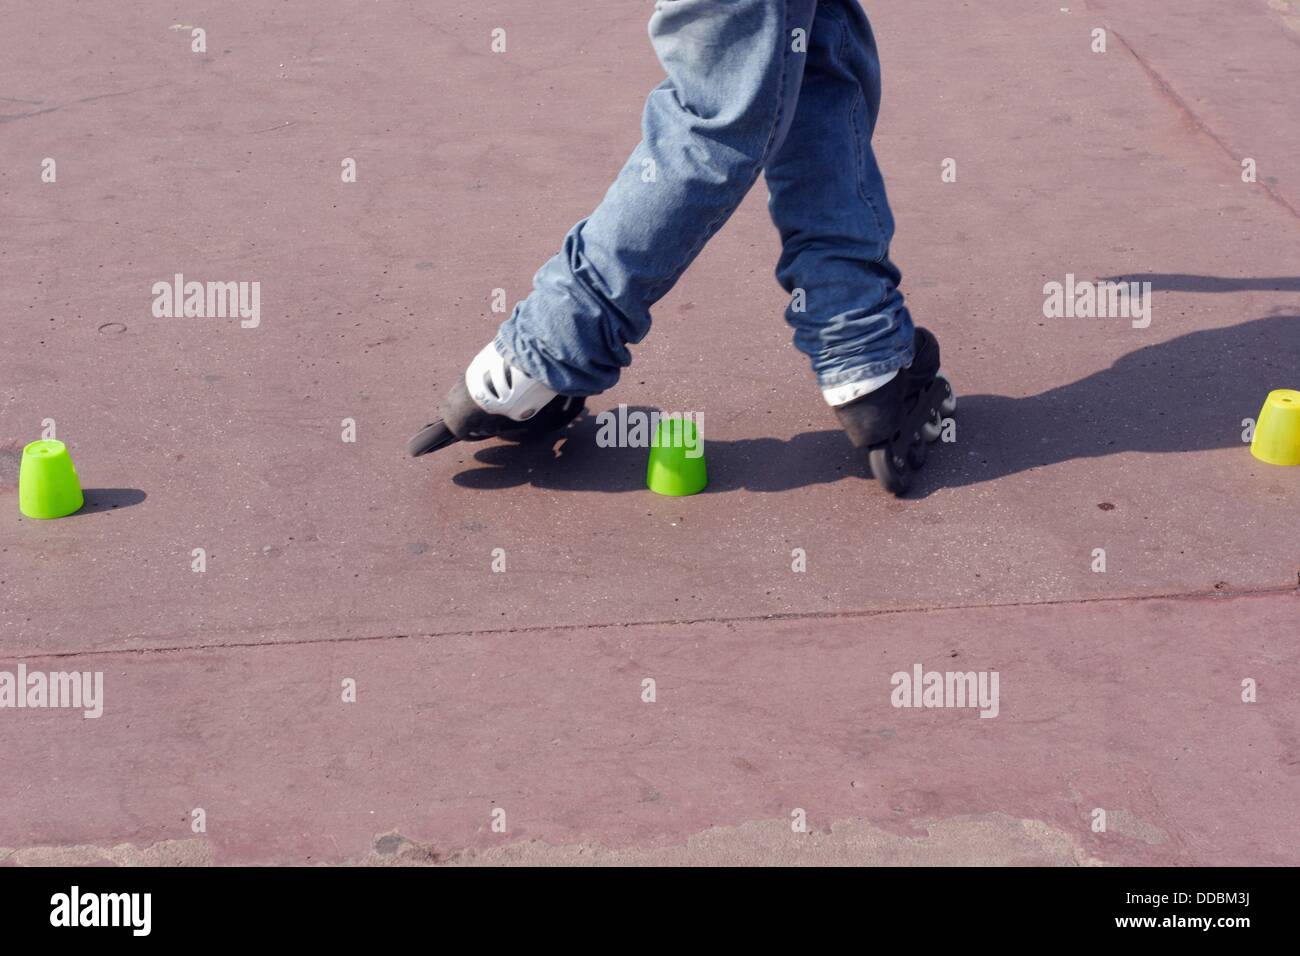 Roller blader performing tricks on Promenade des Anglais in Nice France Stock Photo